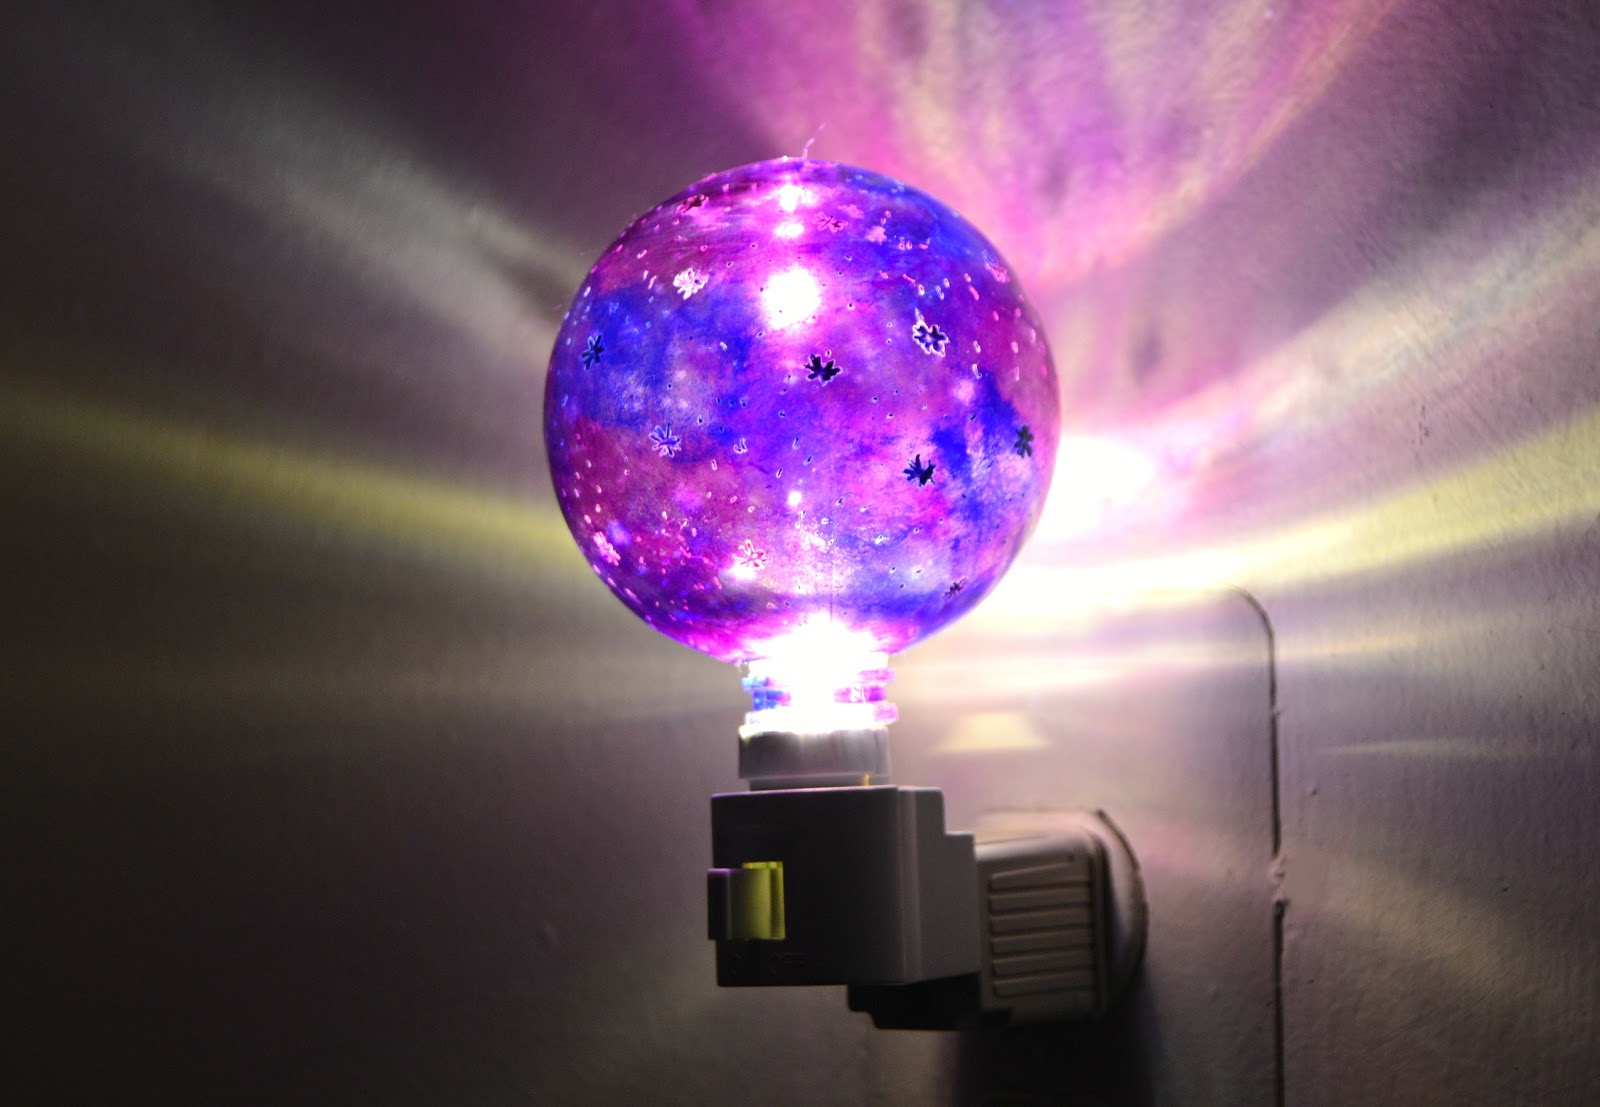 Galaxy Lights For Bedroom Lamp Drawing For Kids Excellent Slideshow Image With Lamp